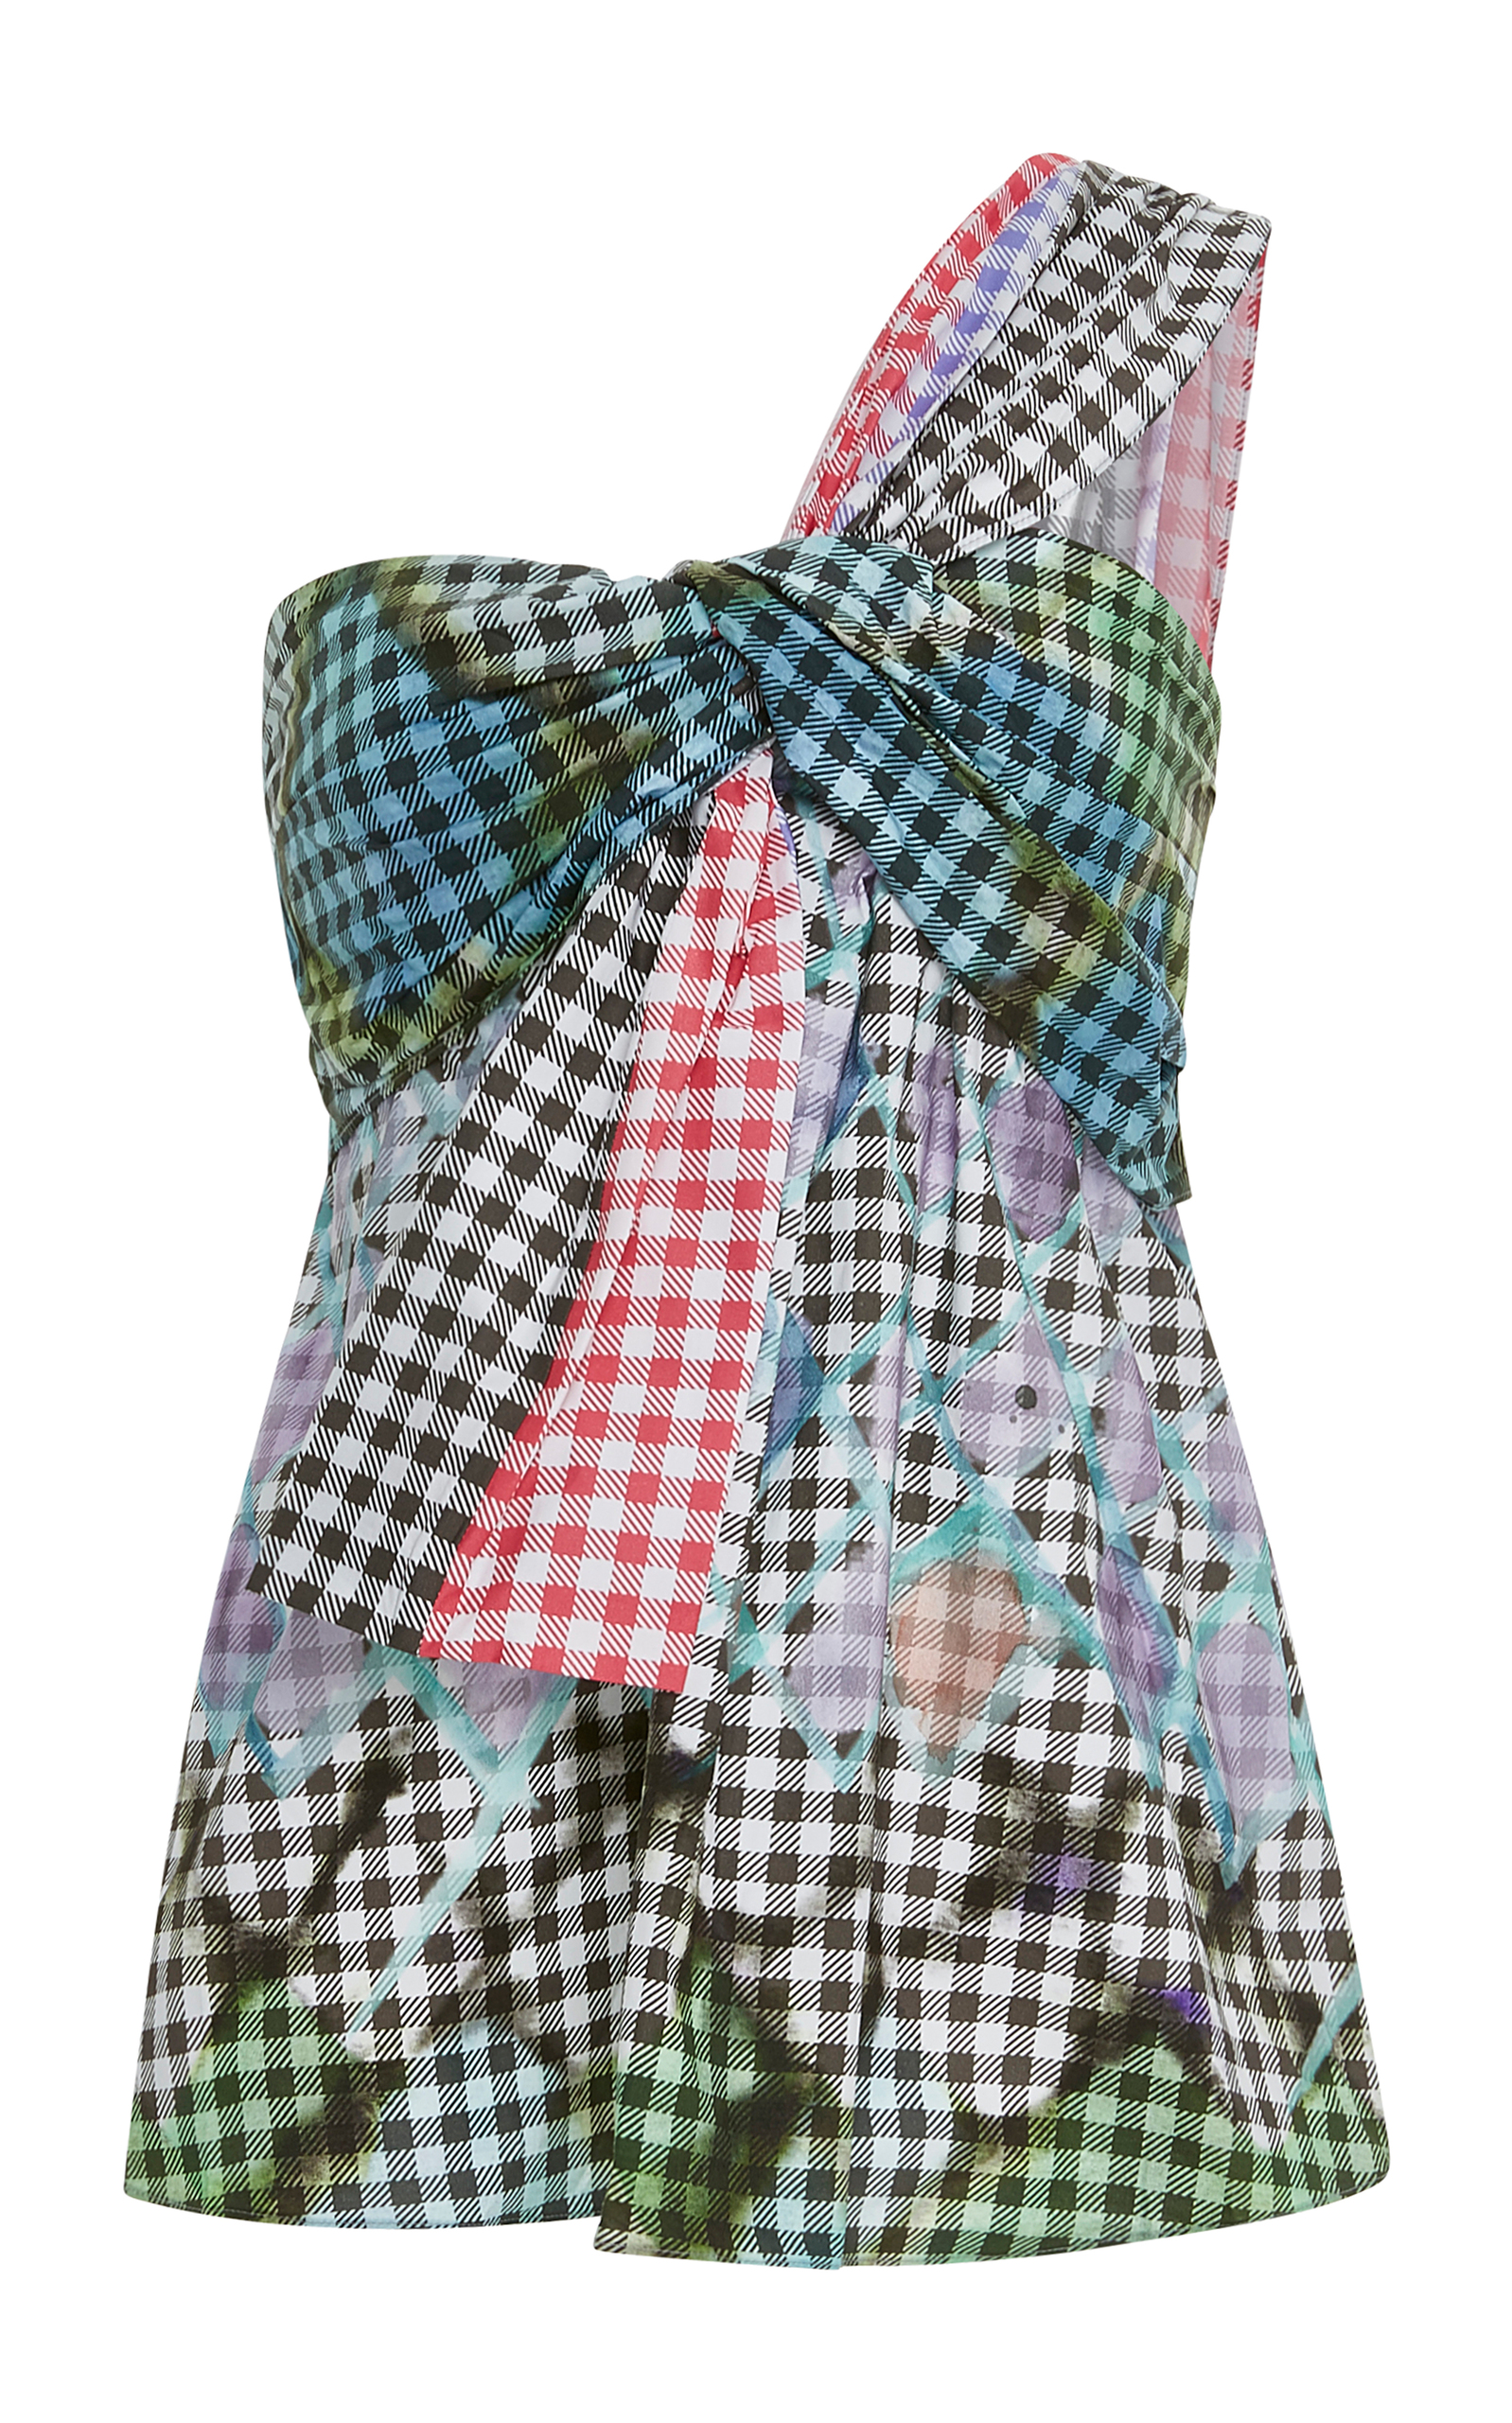 Exclusive For Sale Peter Pilotto checked top For Sale For Sale UD3isC